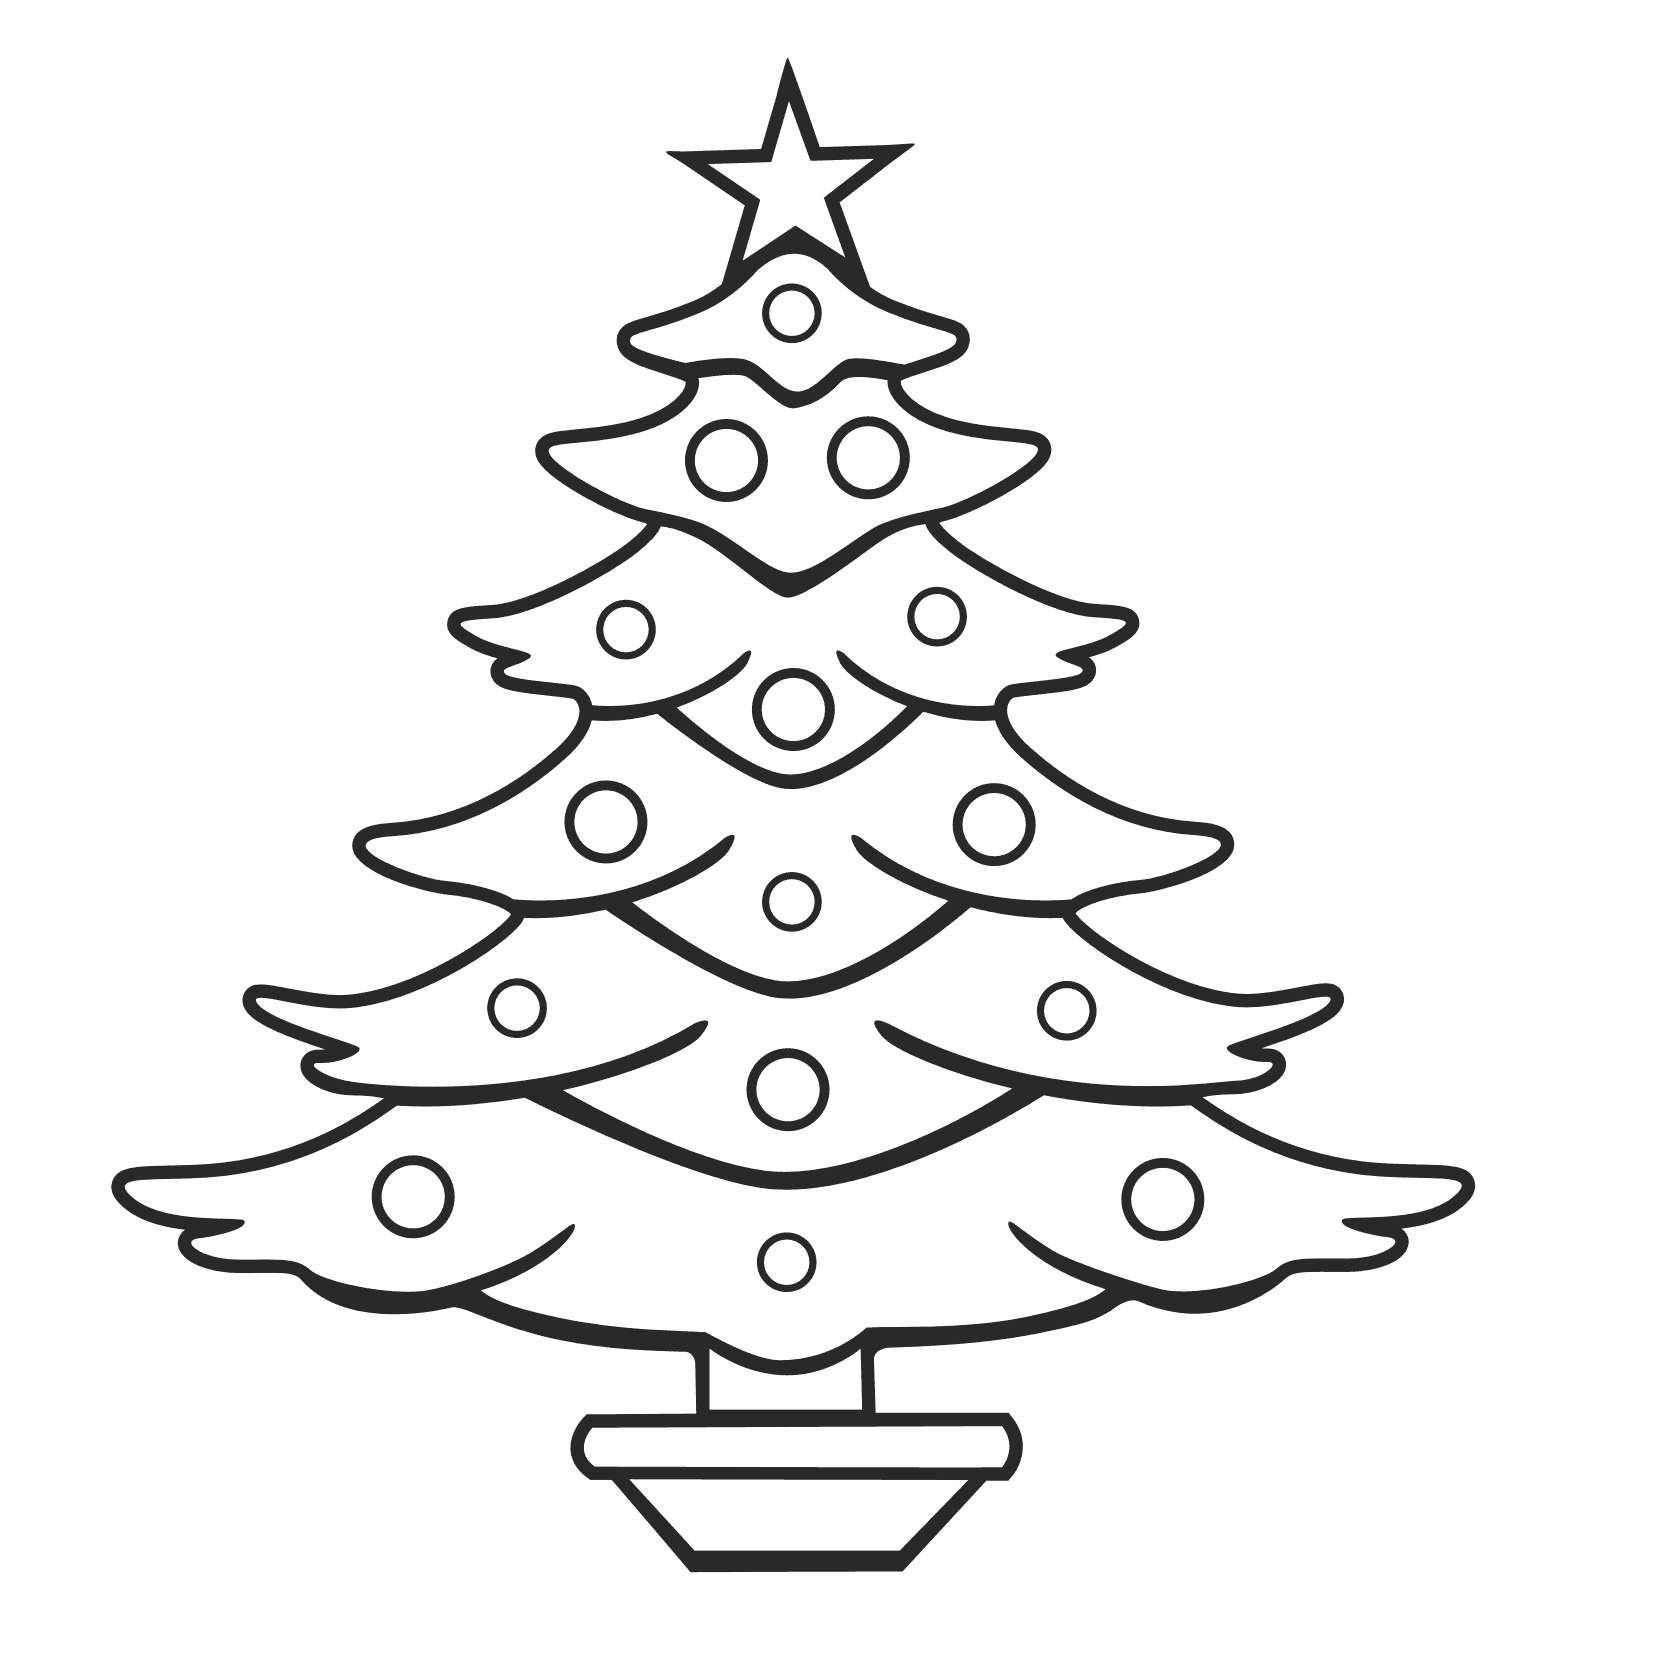 Coloring Rocks Christmas Tree Drawing Christmas Tree Coloring Page Tree Coloring Page